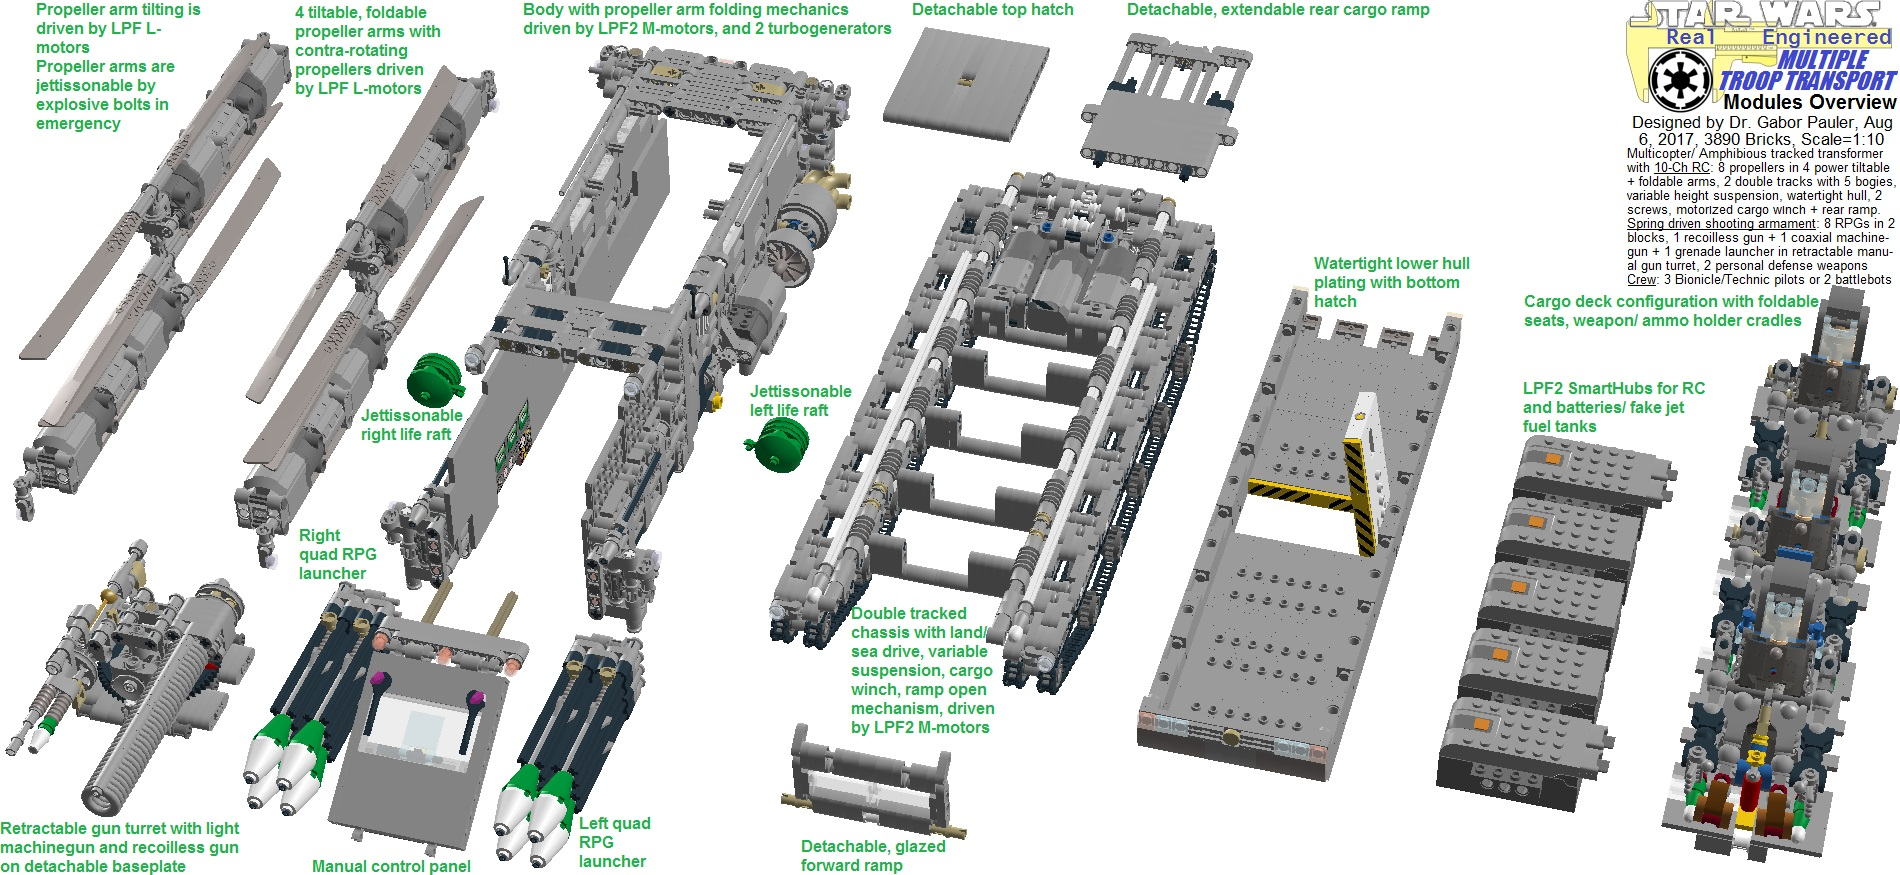 Multiple Troop Transport modules overview